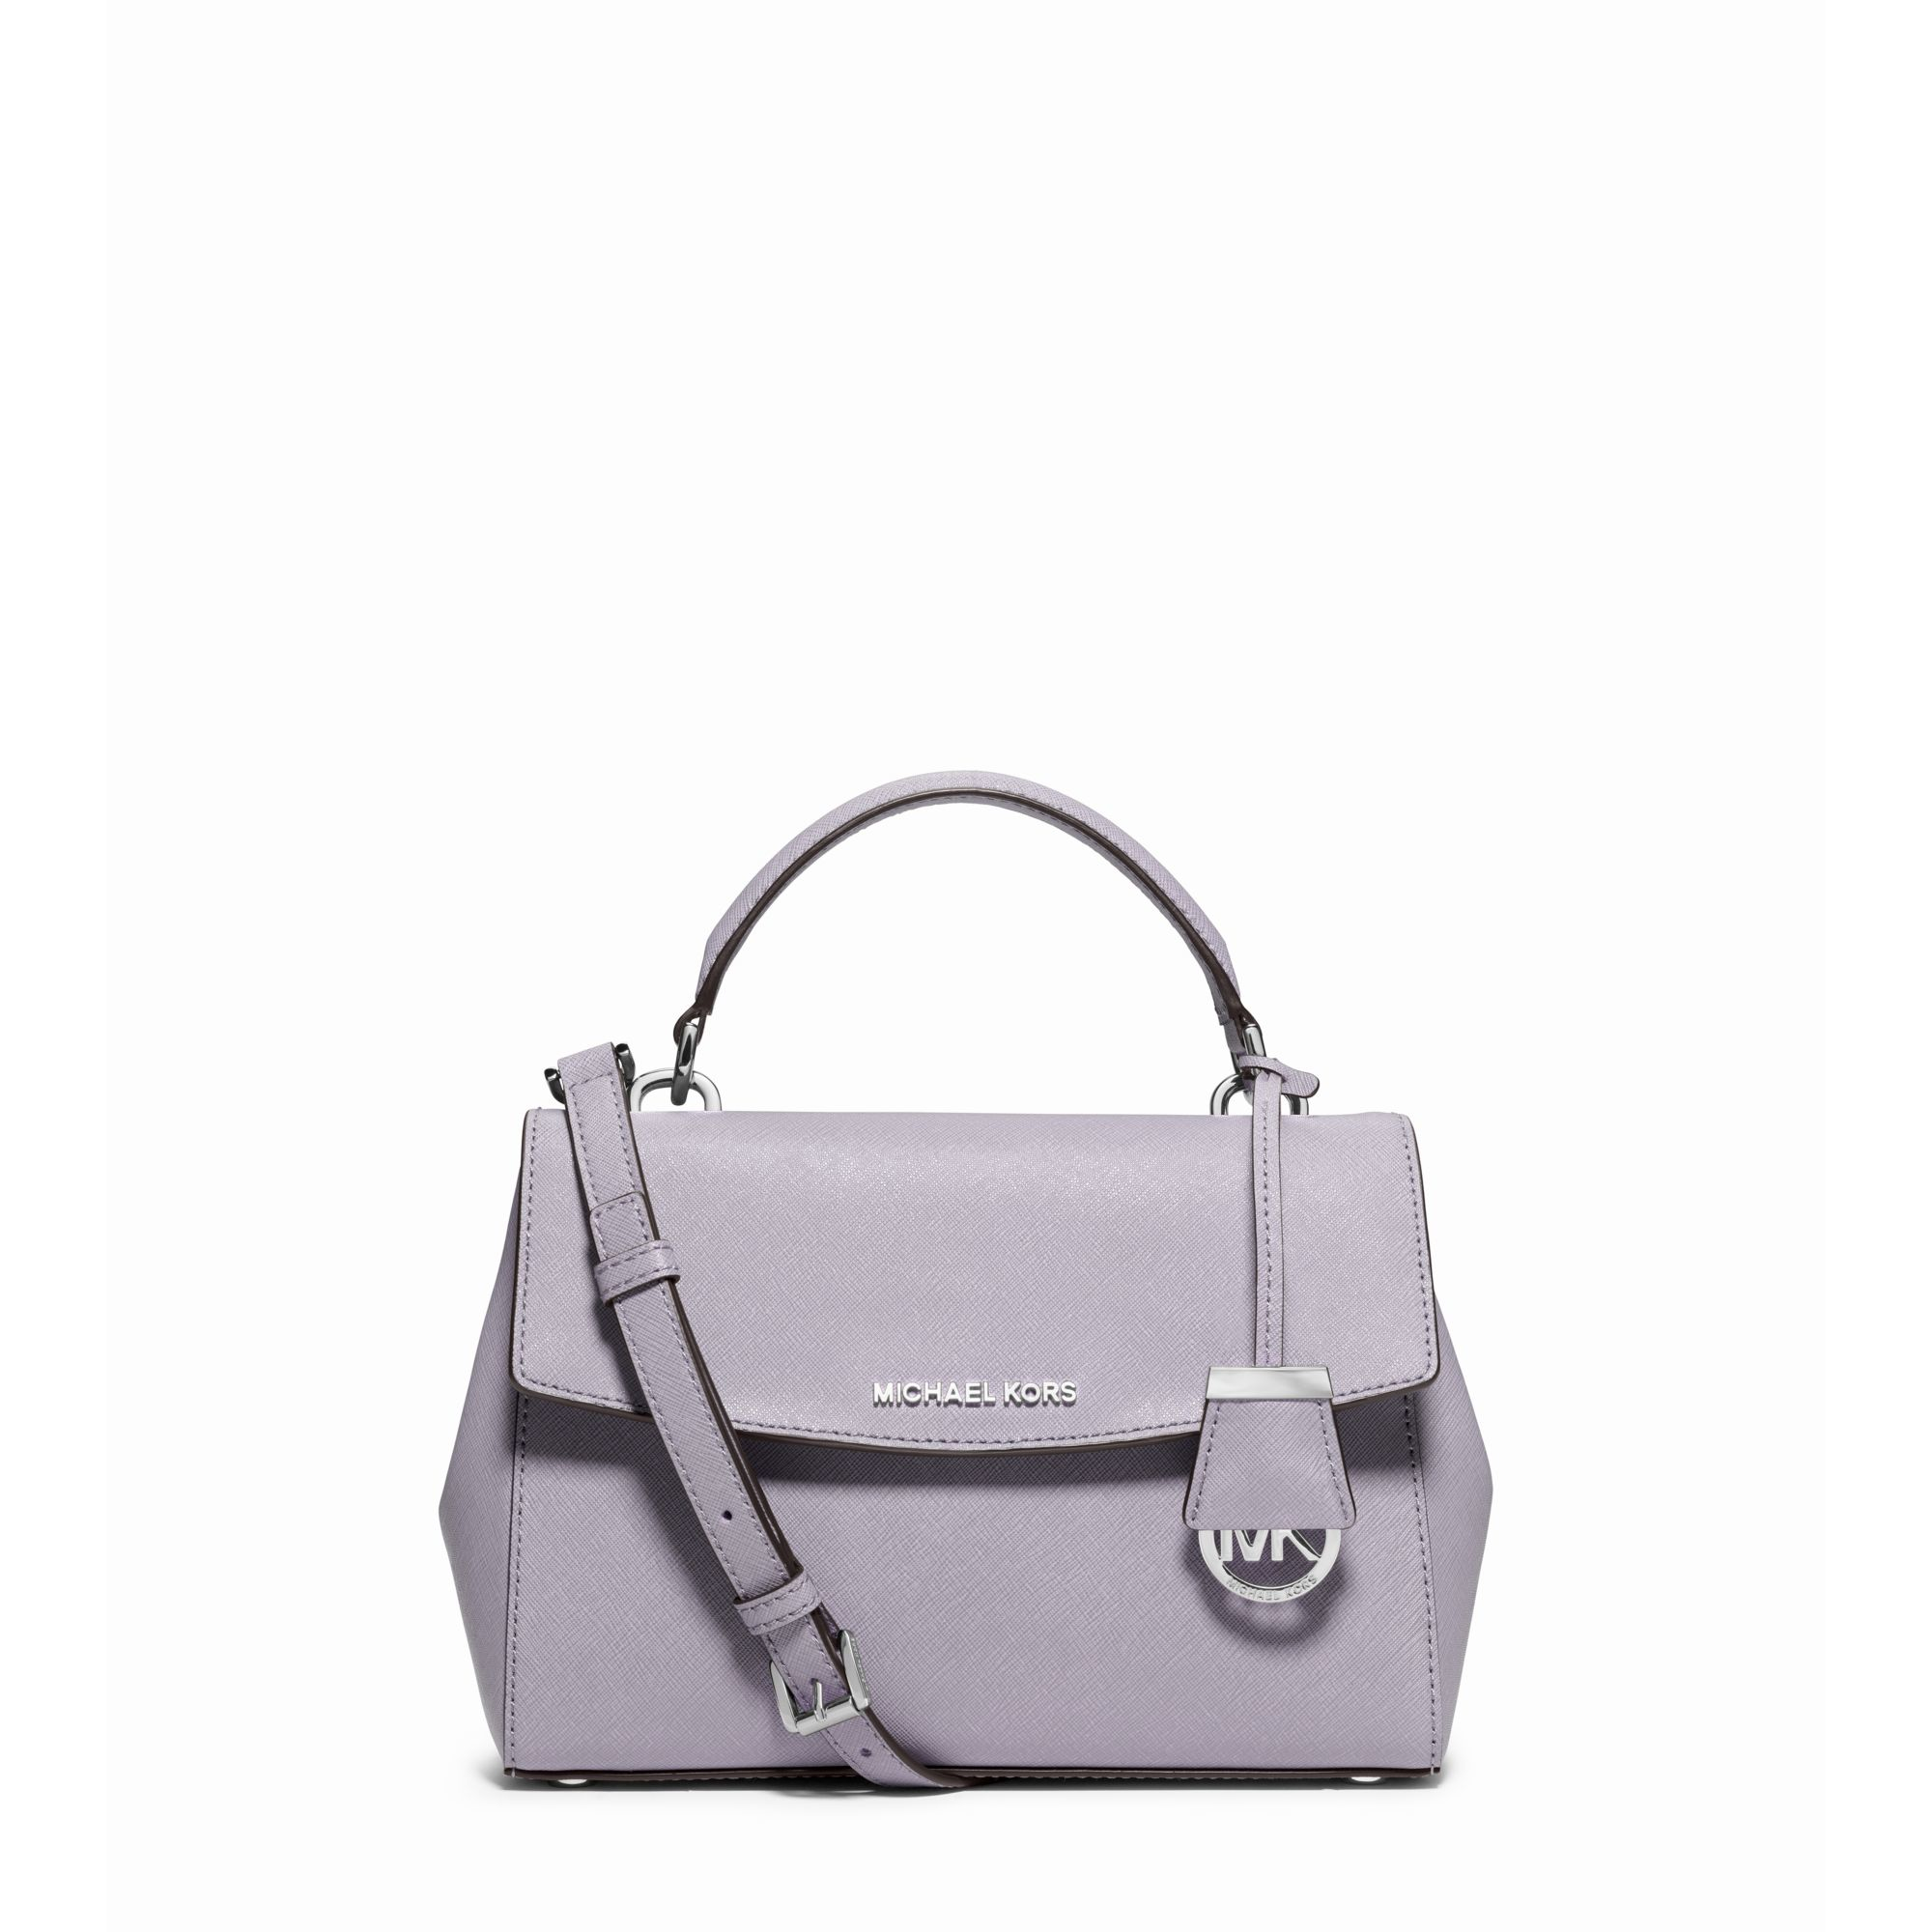 a61fc025be50 Michael Kors Ava Small Saffiano Leather Satchel in Purple - Lyst